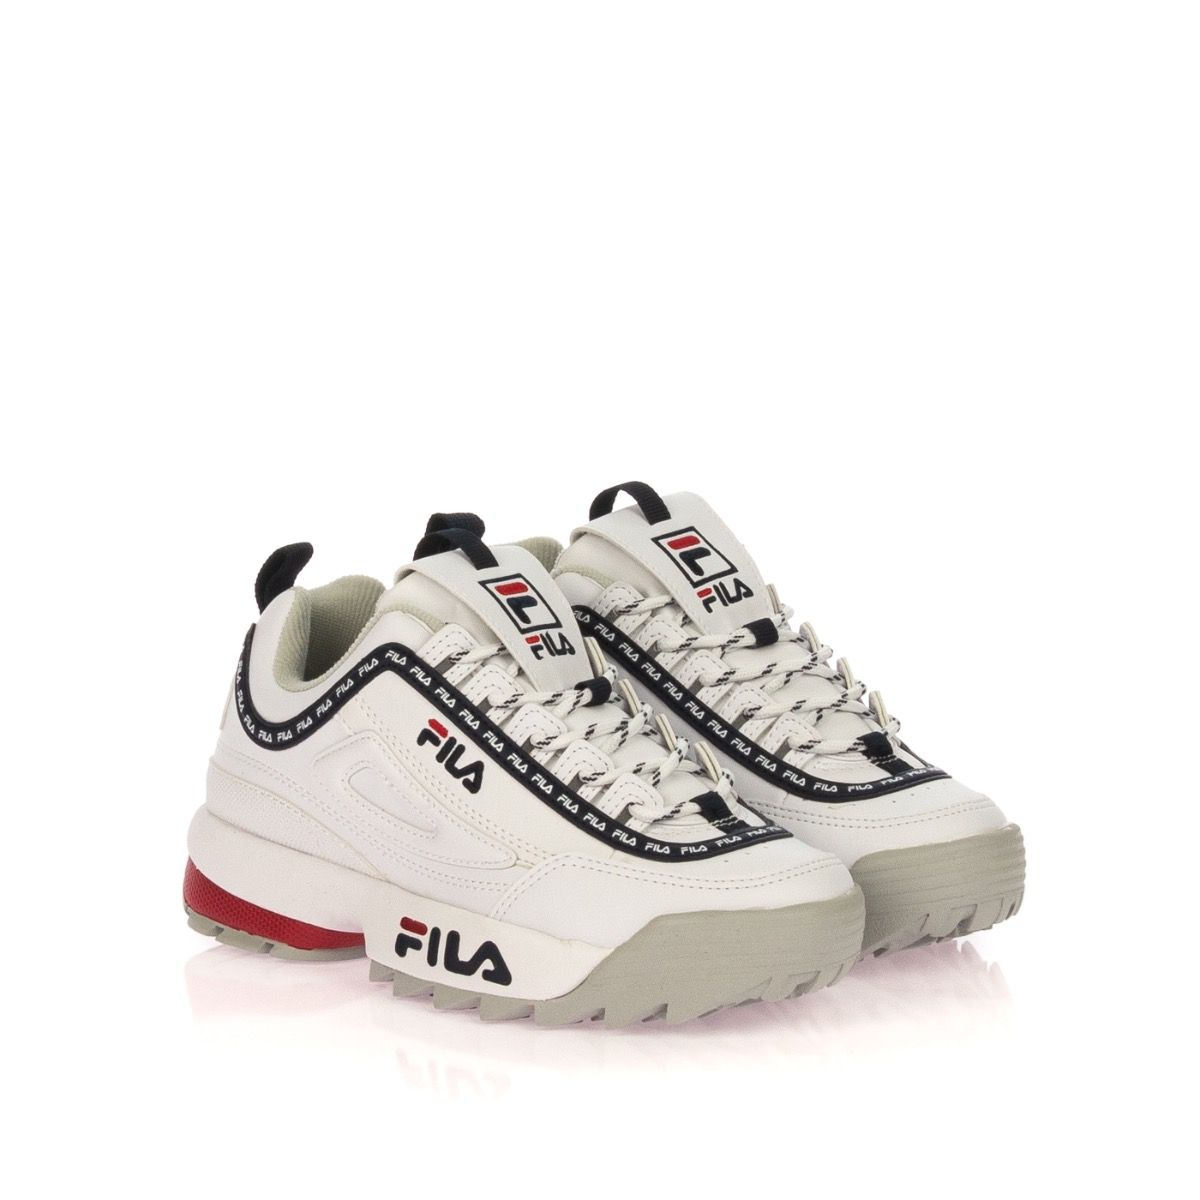 FILA DISRUPTOR LOGO LOW 1010748 SNEAKERS DONNA BIANCO